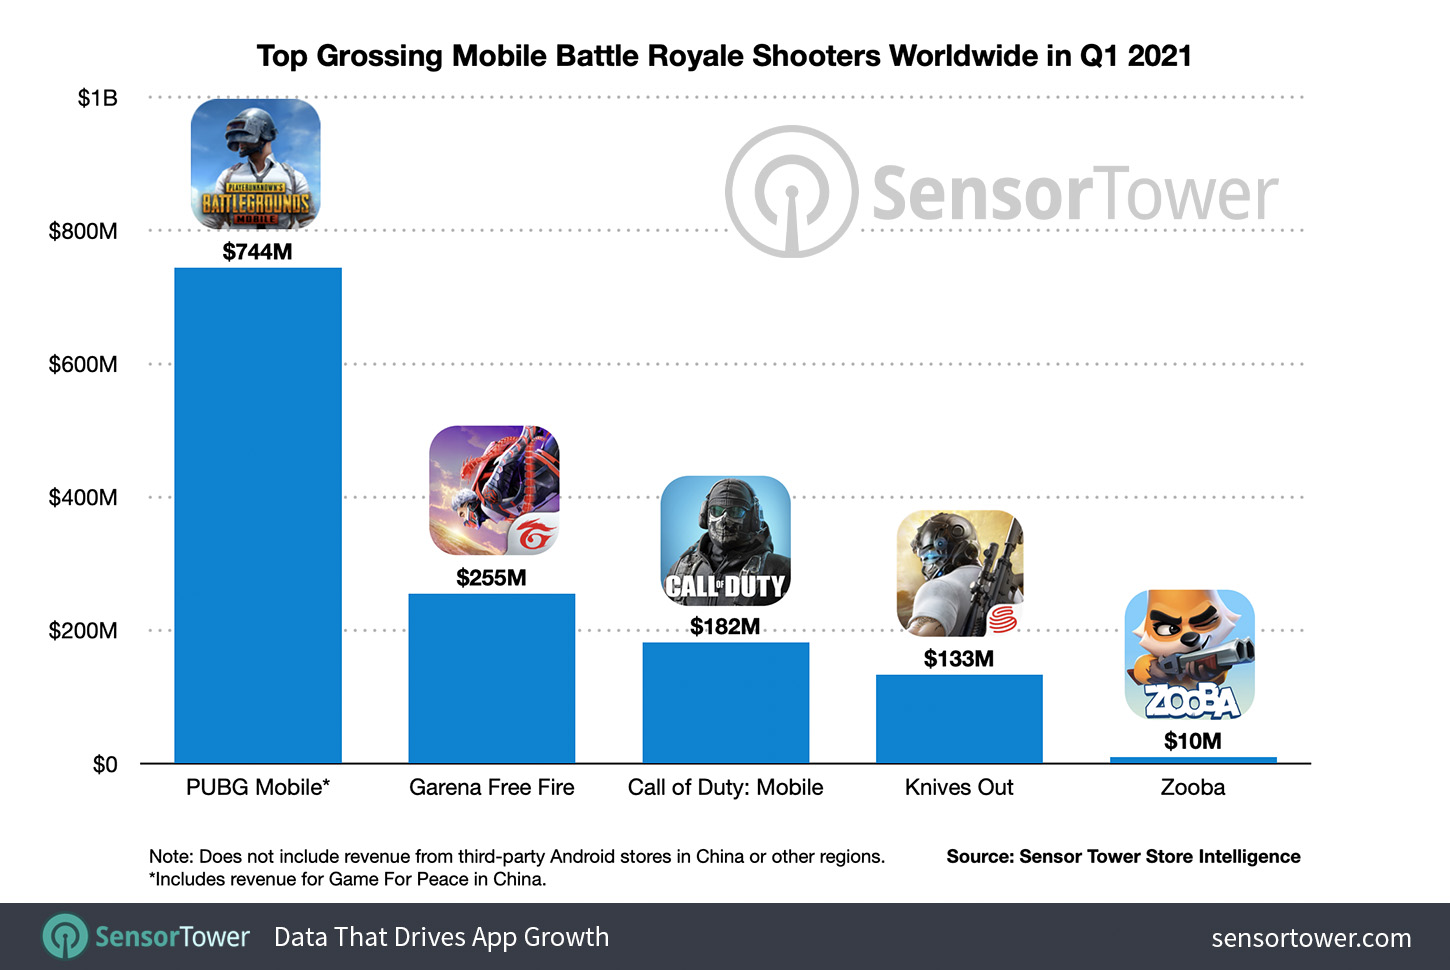 Top Grossing Mobile Battle Royale Shooters Worldwide in Q1 2021